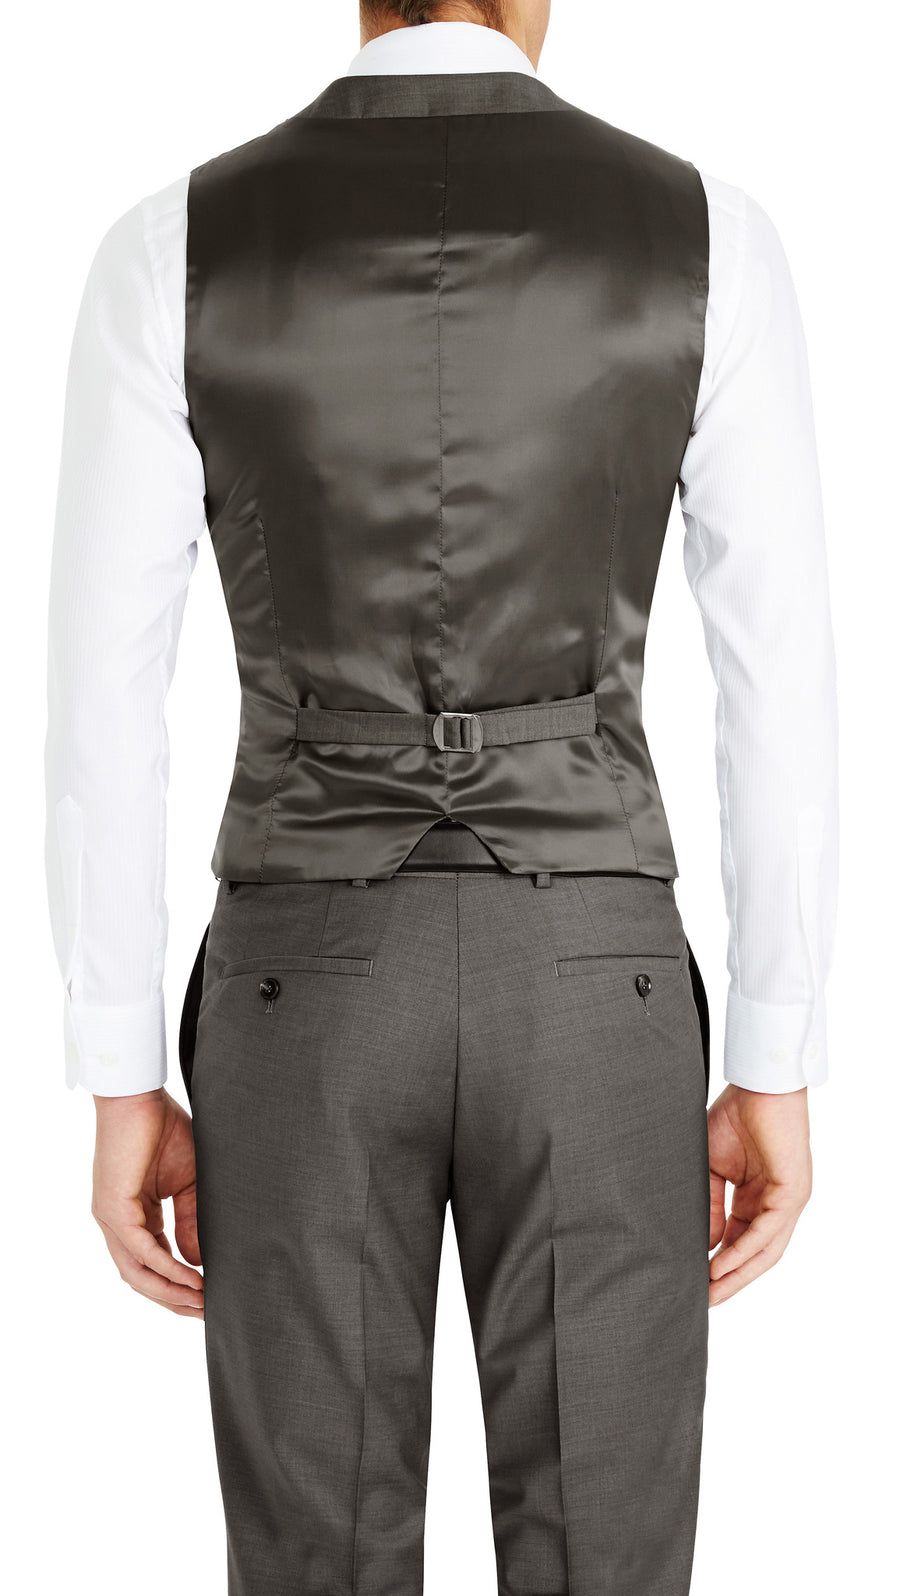 Blackjacket Skinny Fit Vest in Grey - Ron Bennett Menswear  - 1